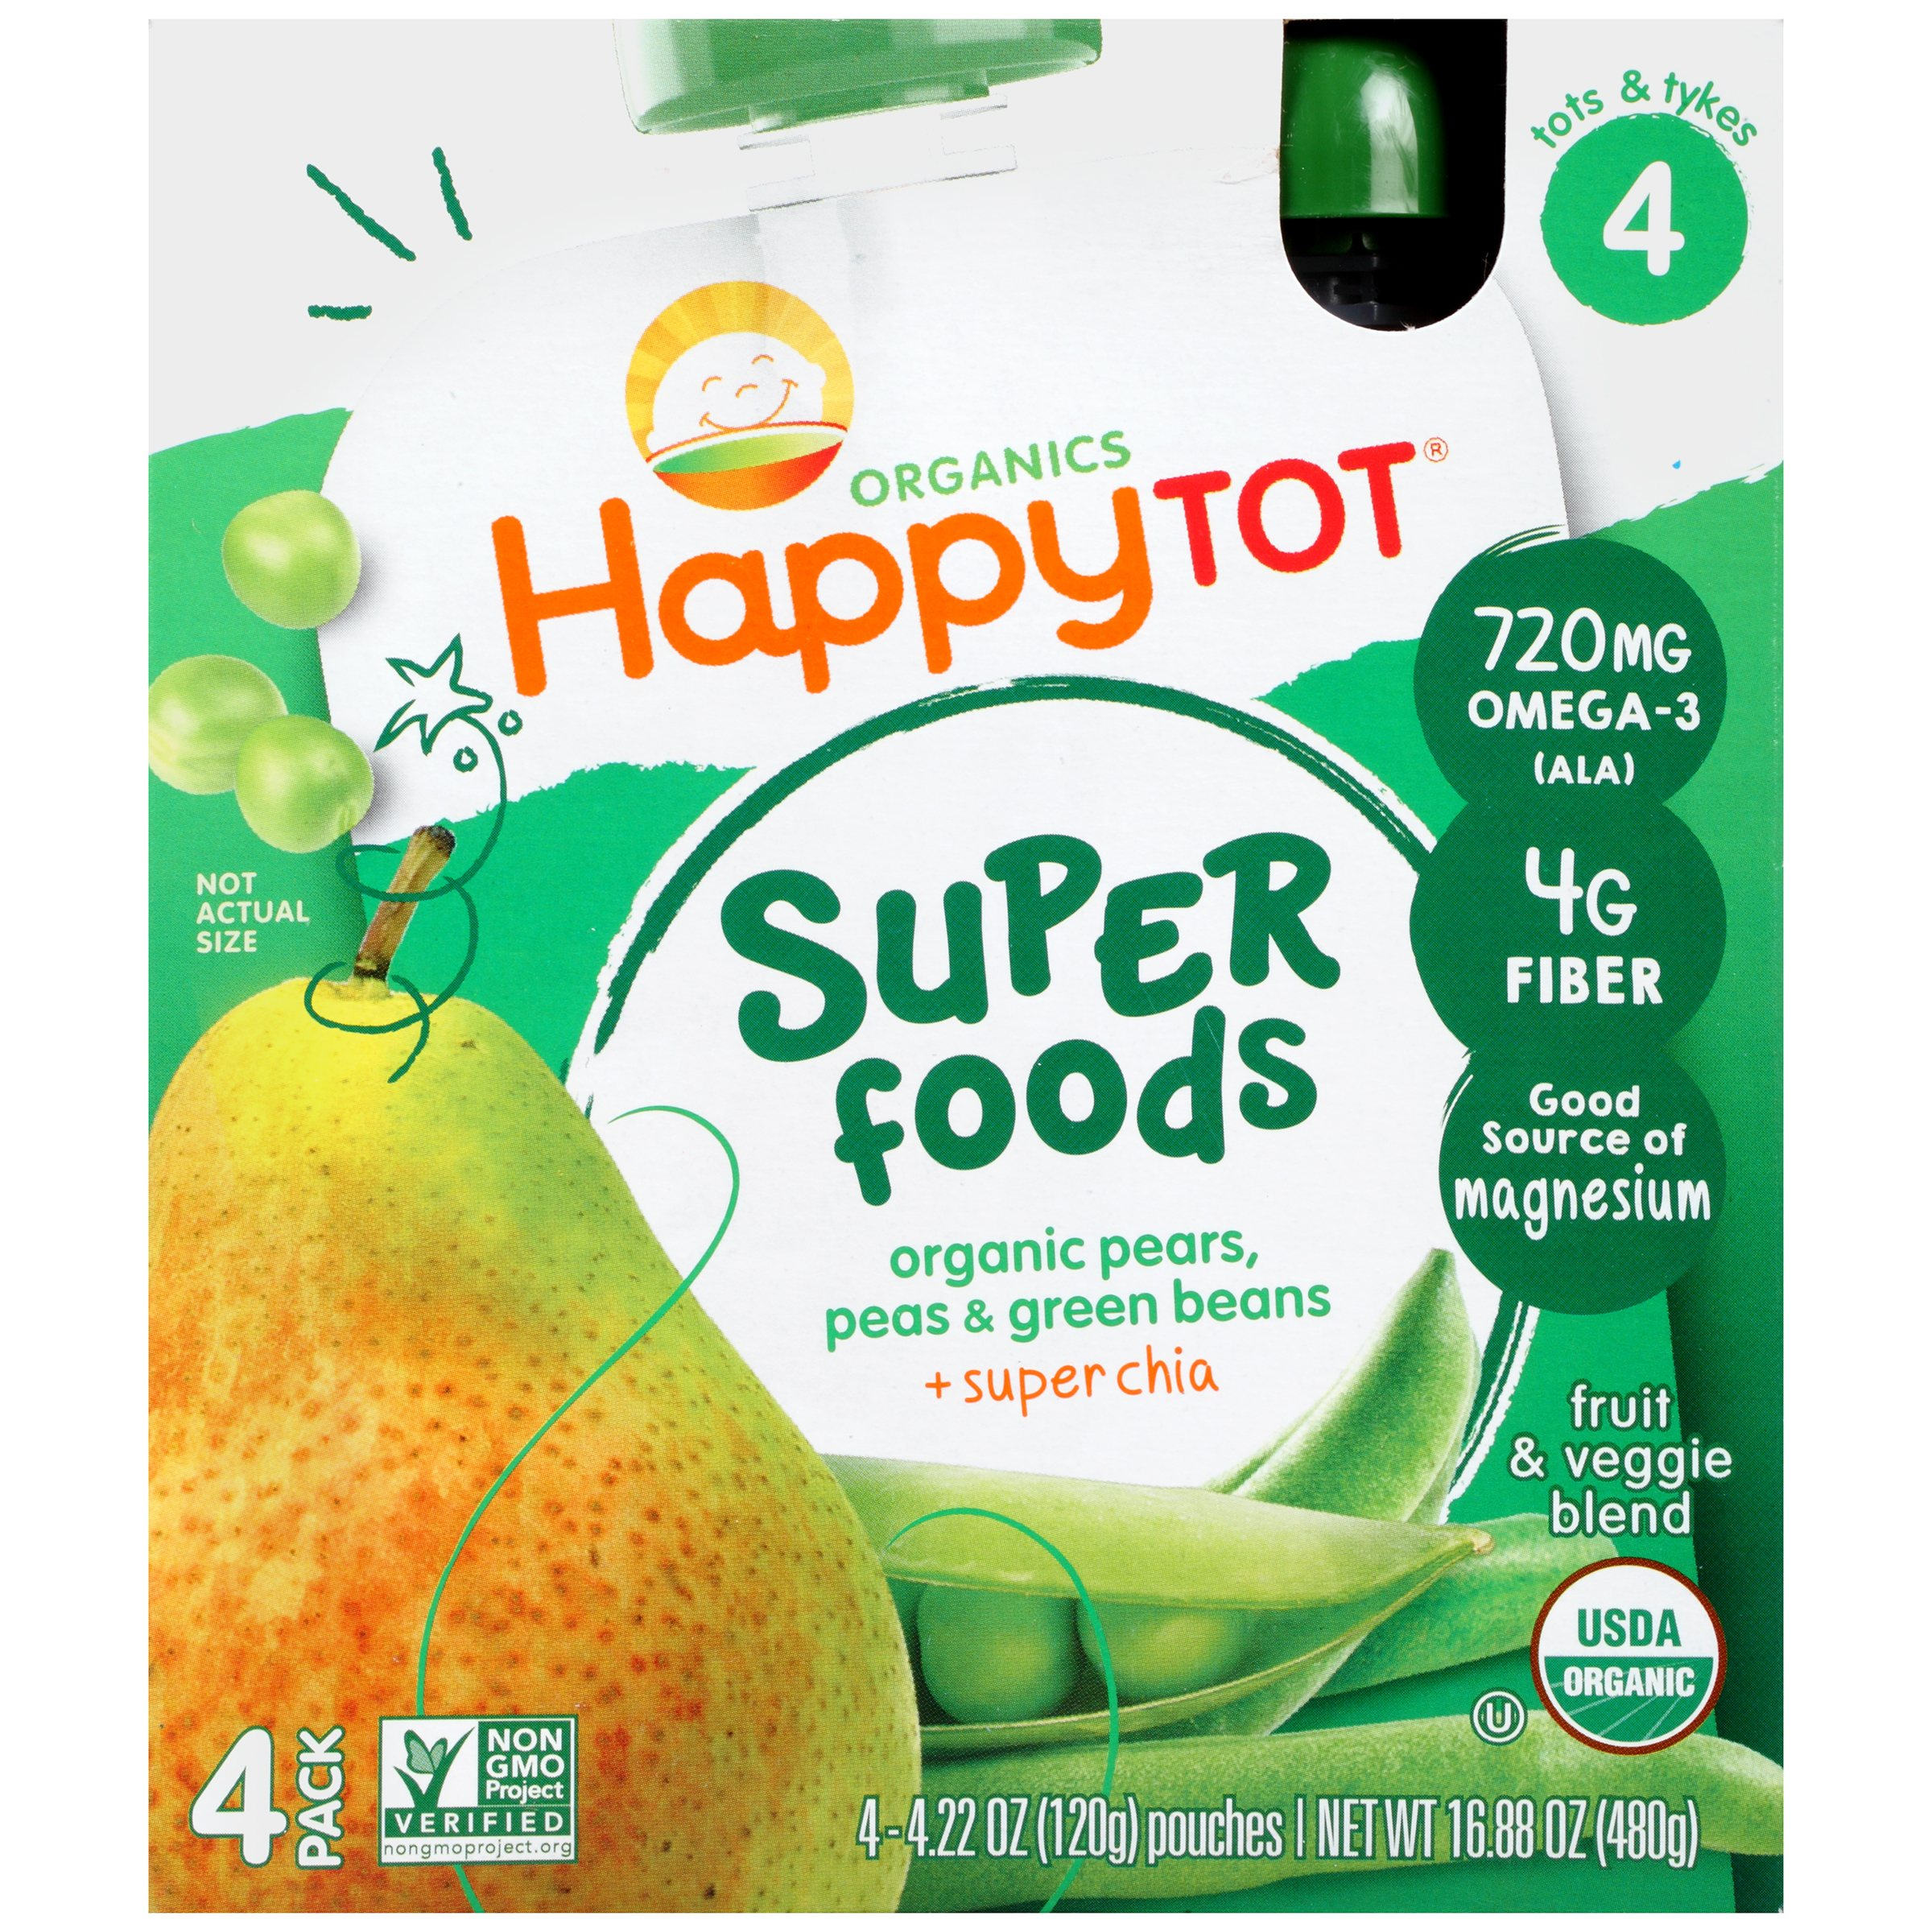 Happy Tots Organic Superfood Green Beans, Pear & Pea